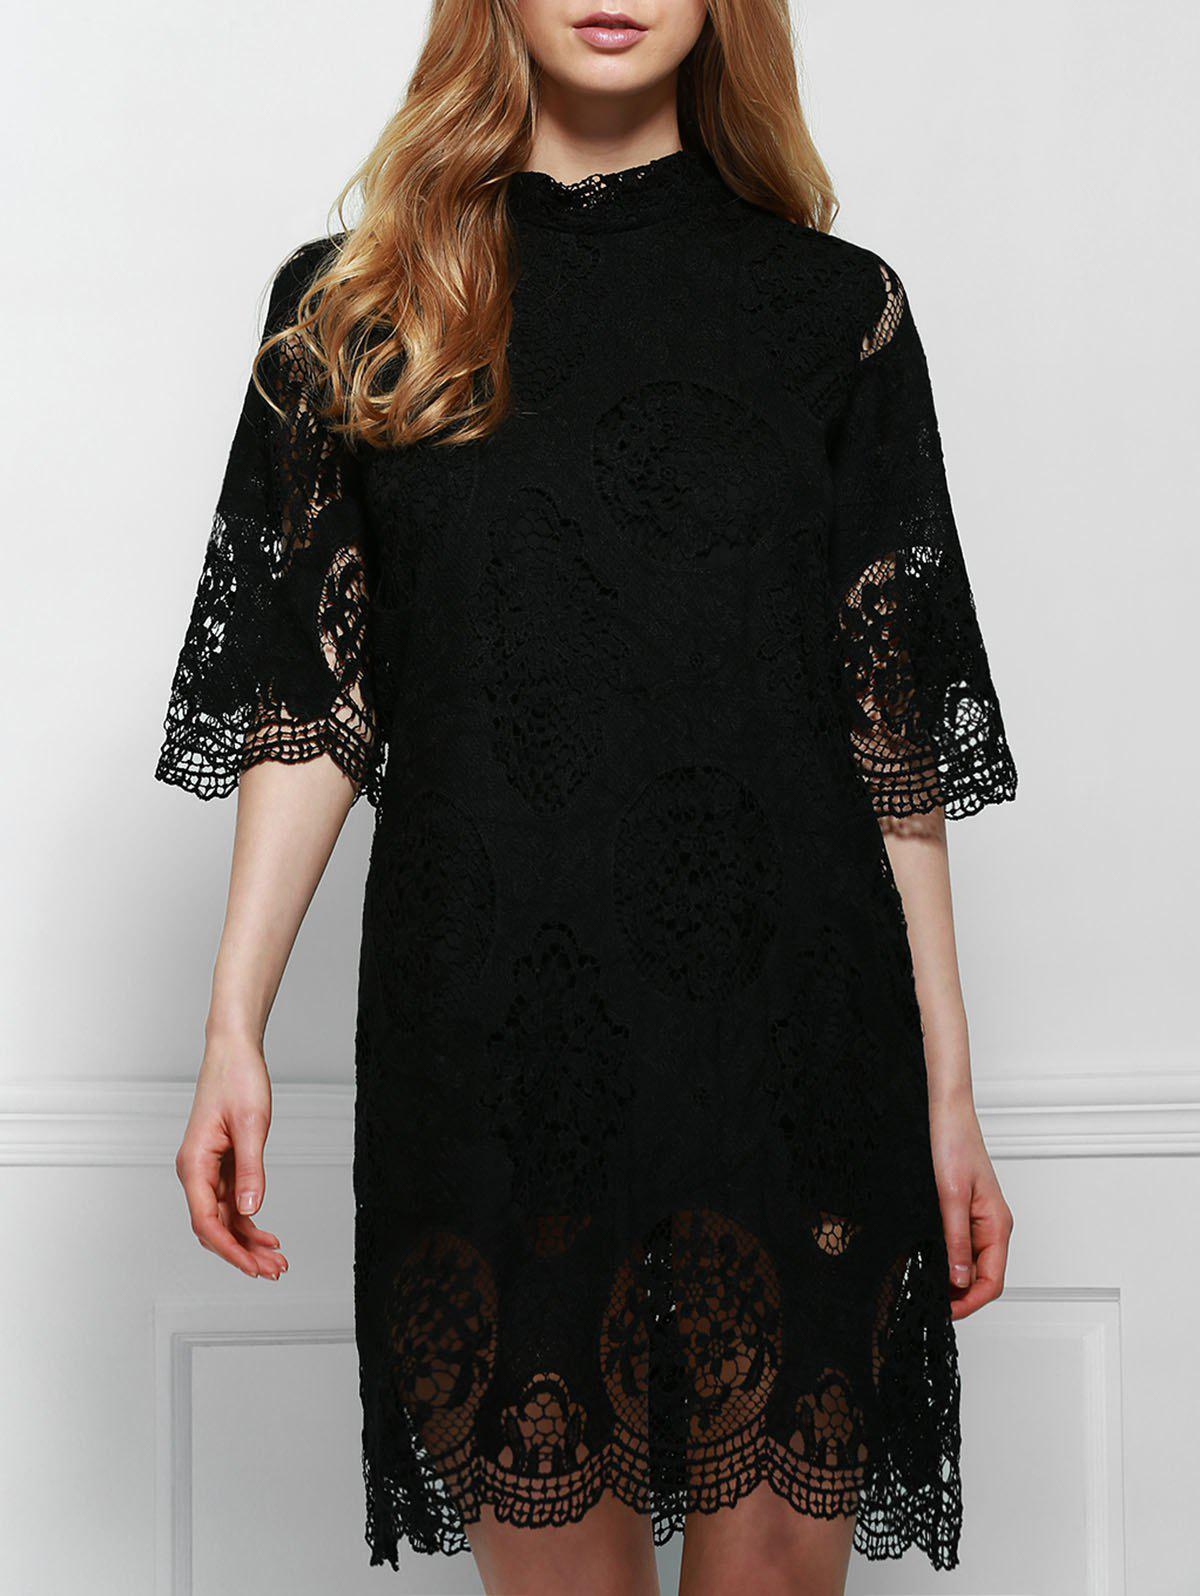 Elegant Stand-Up Collar 3/4 Sleeve Solid Color Women's Lace Dress - BLACK S